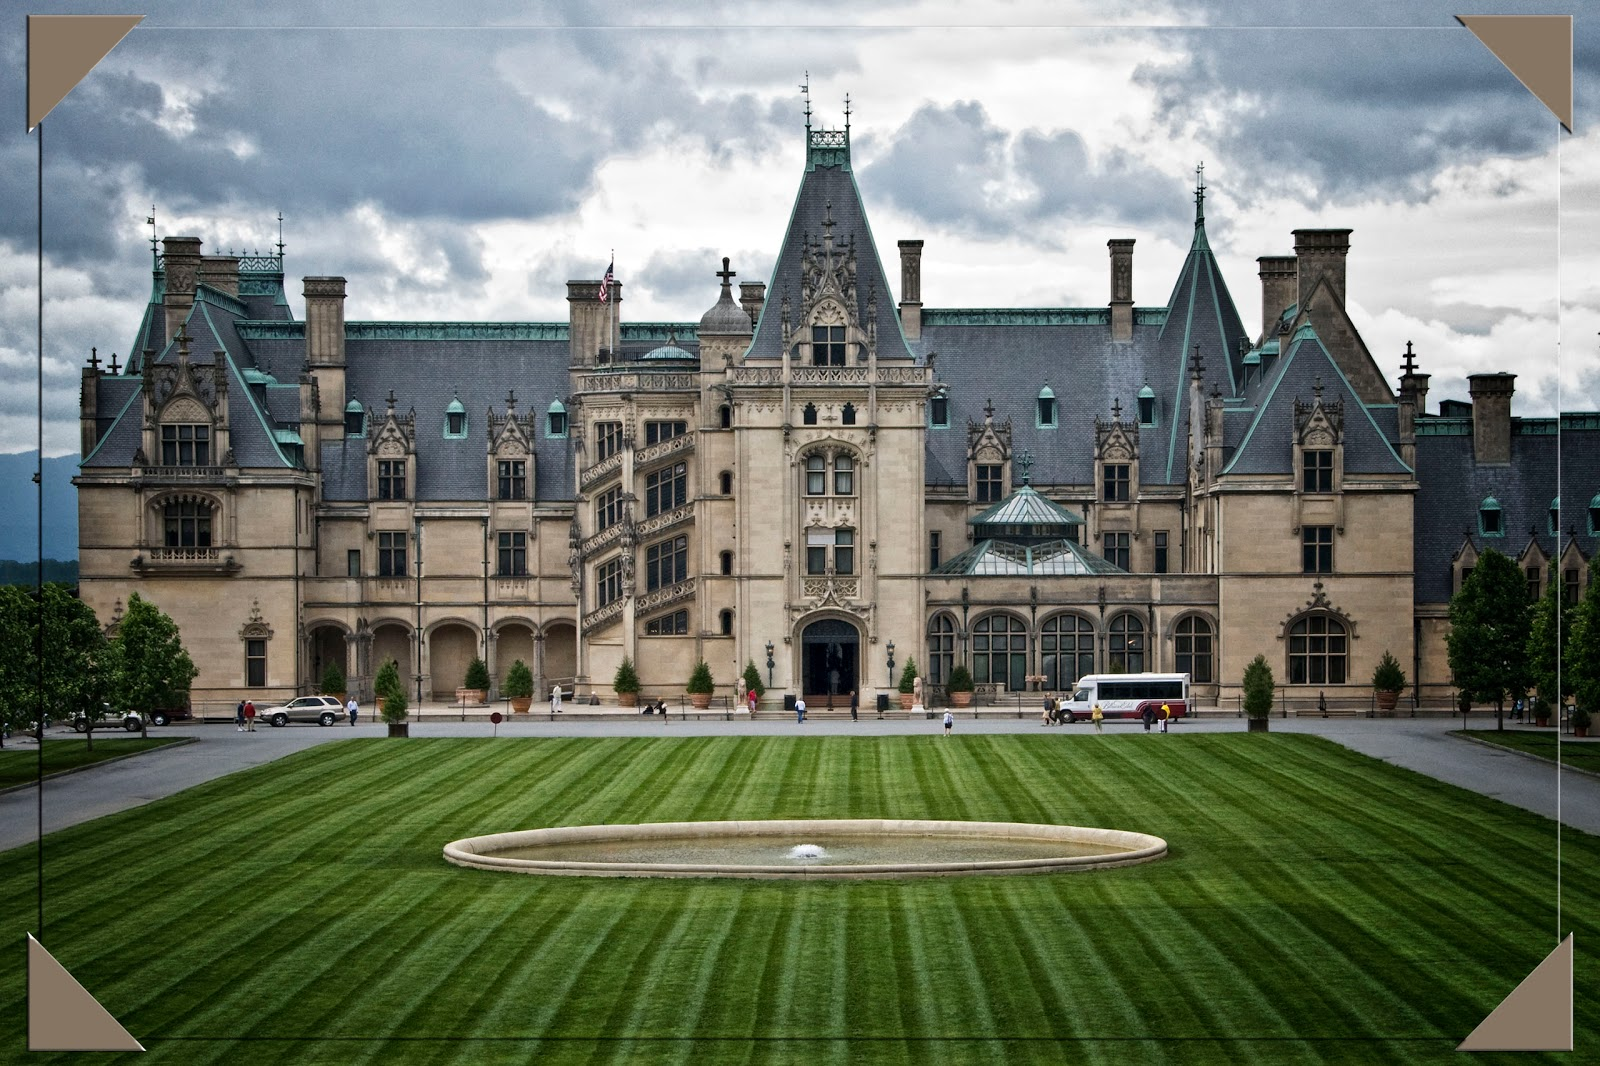 Our Travel Blog: Biltmore - Asheville, NC - May 16, 2011